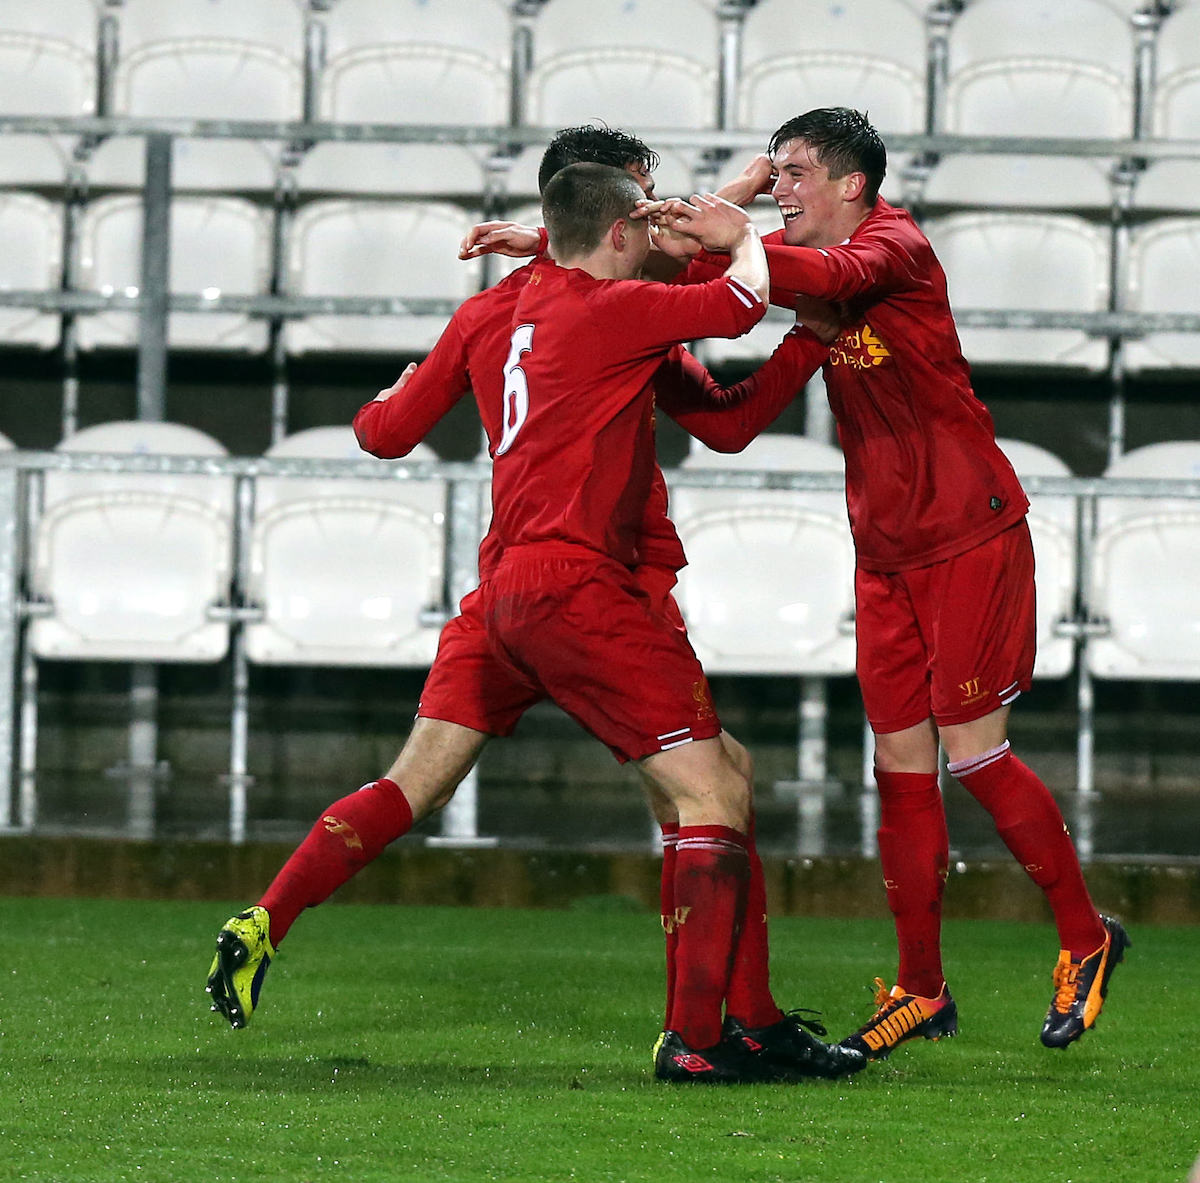 Liverpool_FC_youth_team_celebrate_victory_football4football